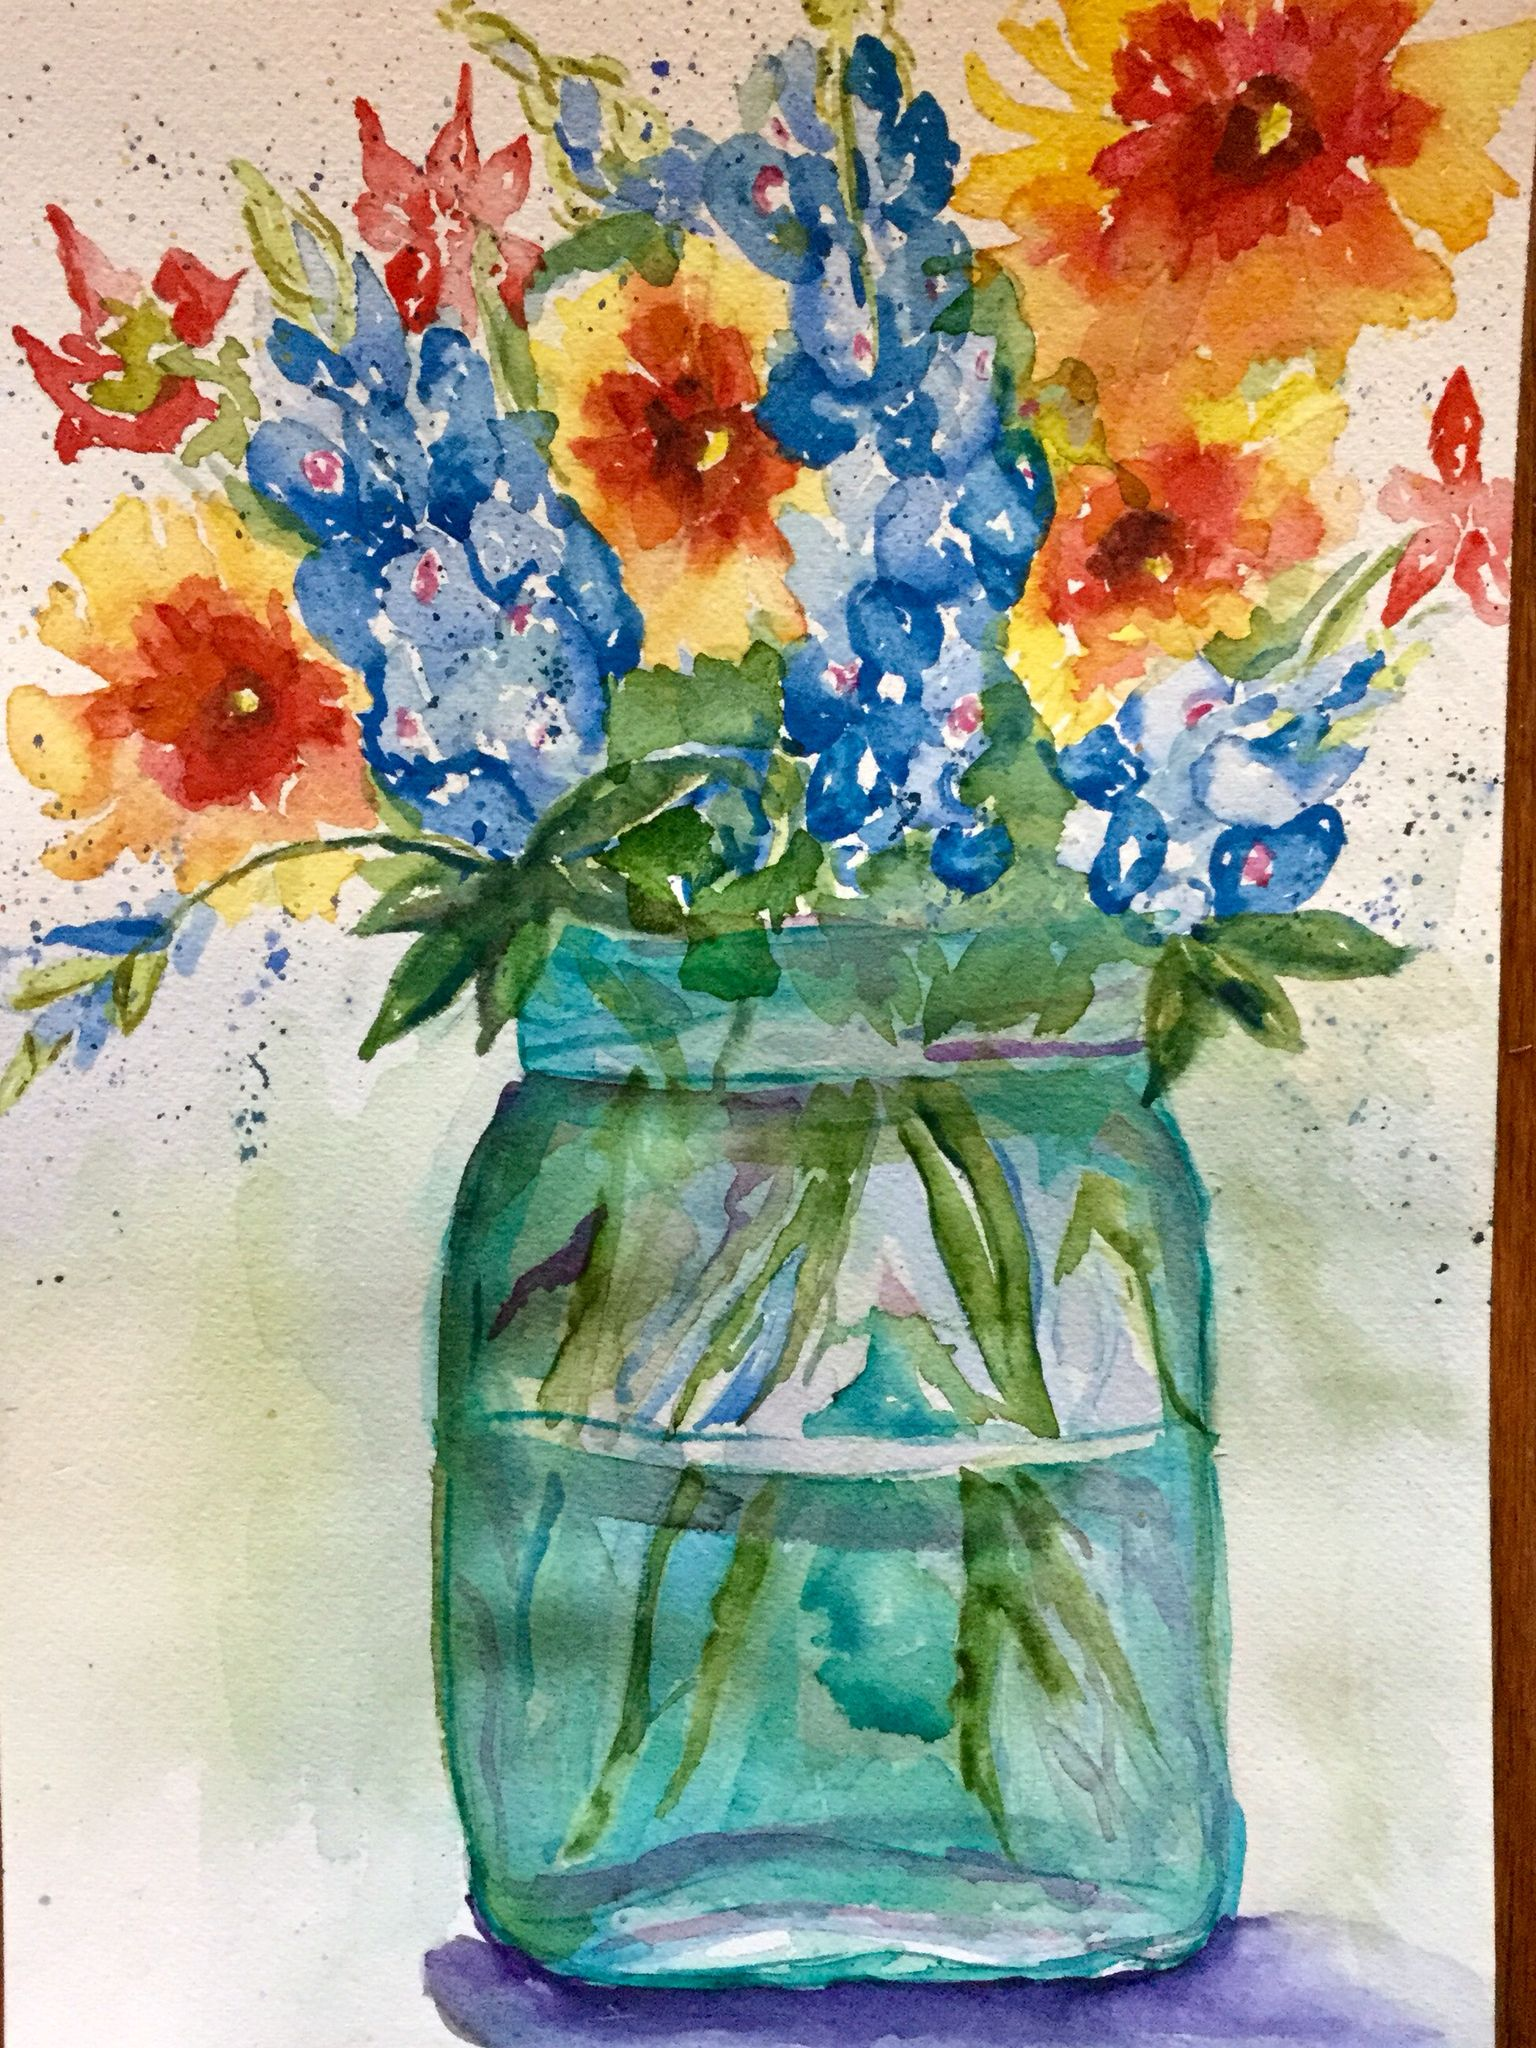 Watercolor artists in texas -  Wild Thangs In A Jar By Texas Watercolor Artist Karen Scherrer